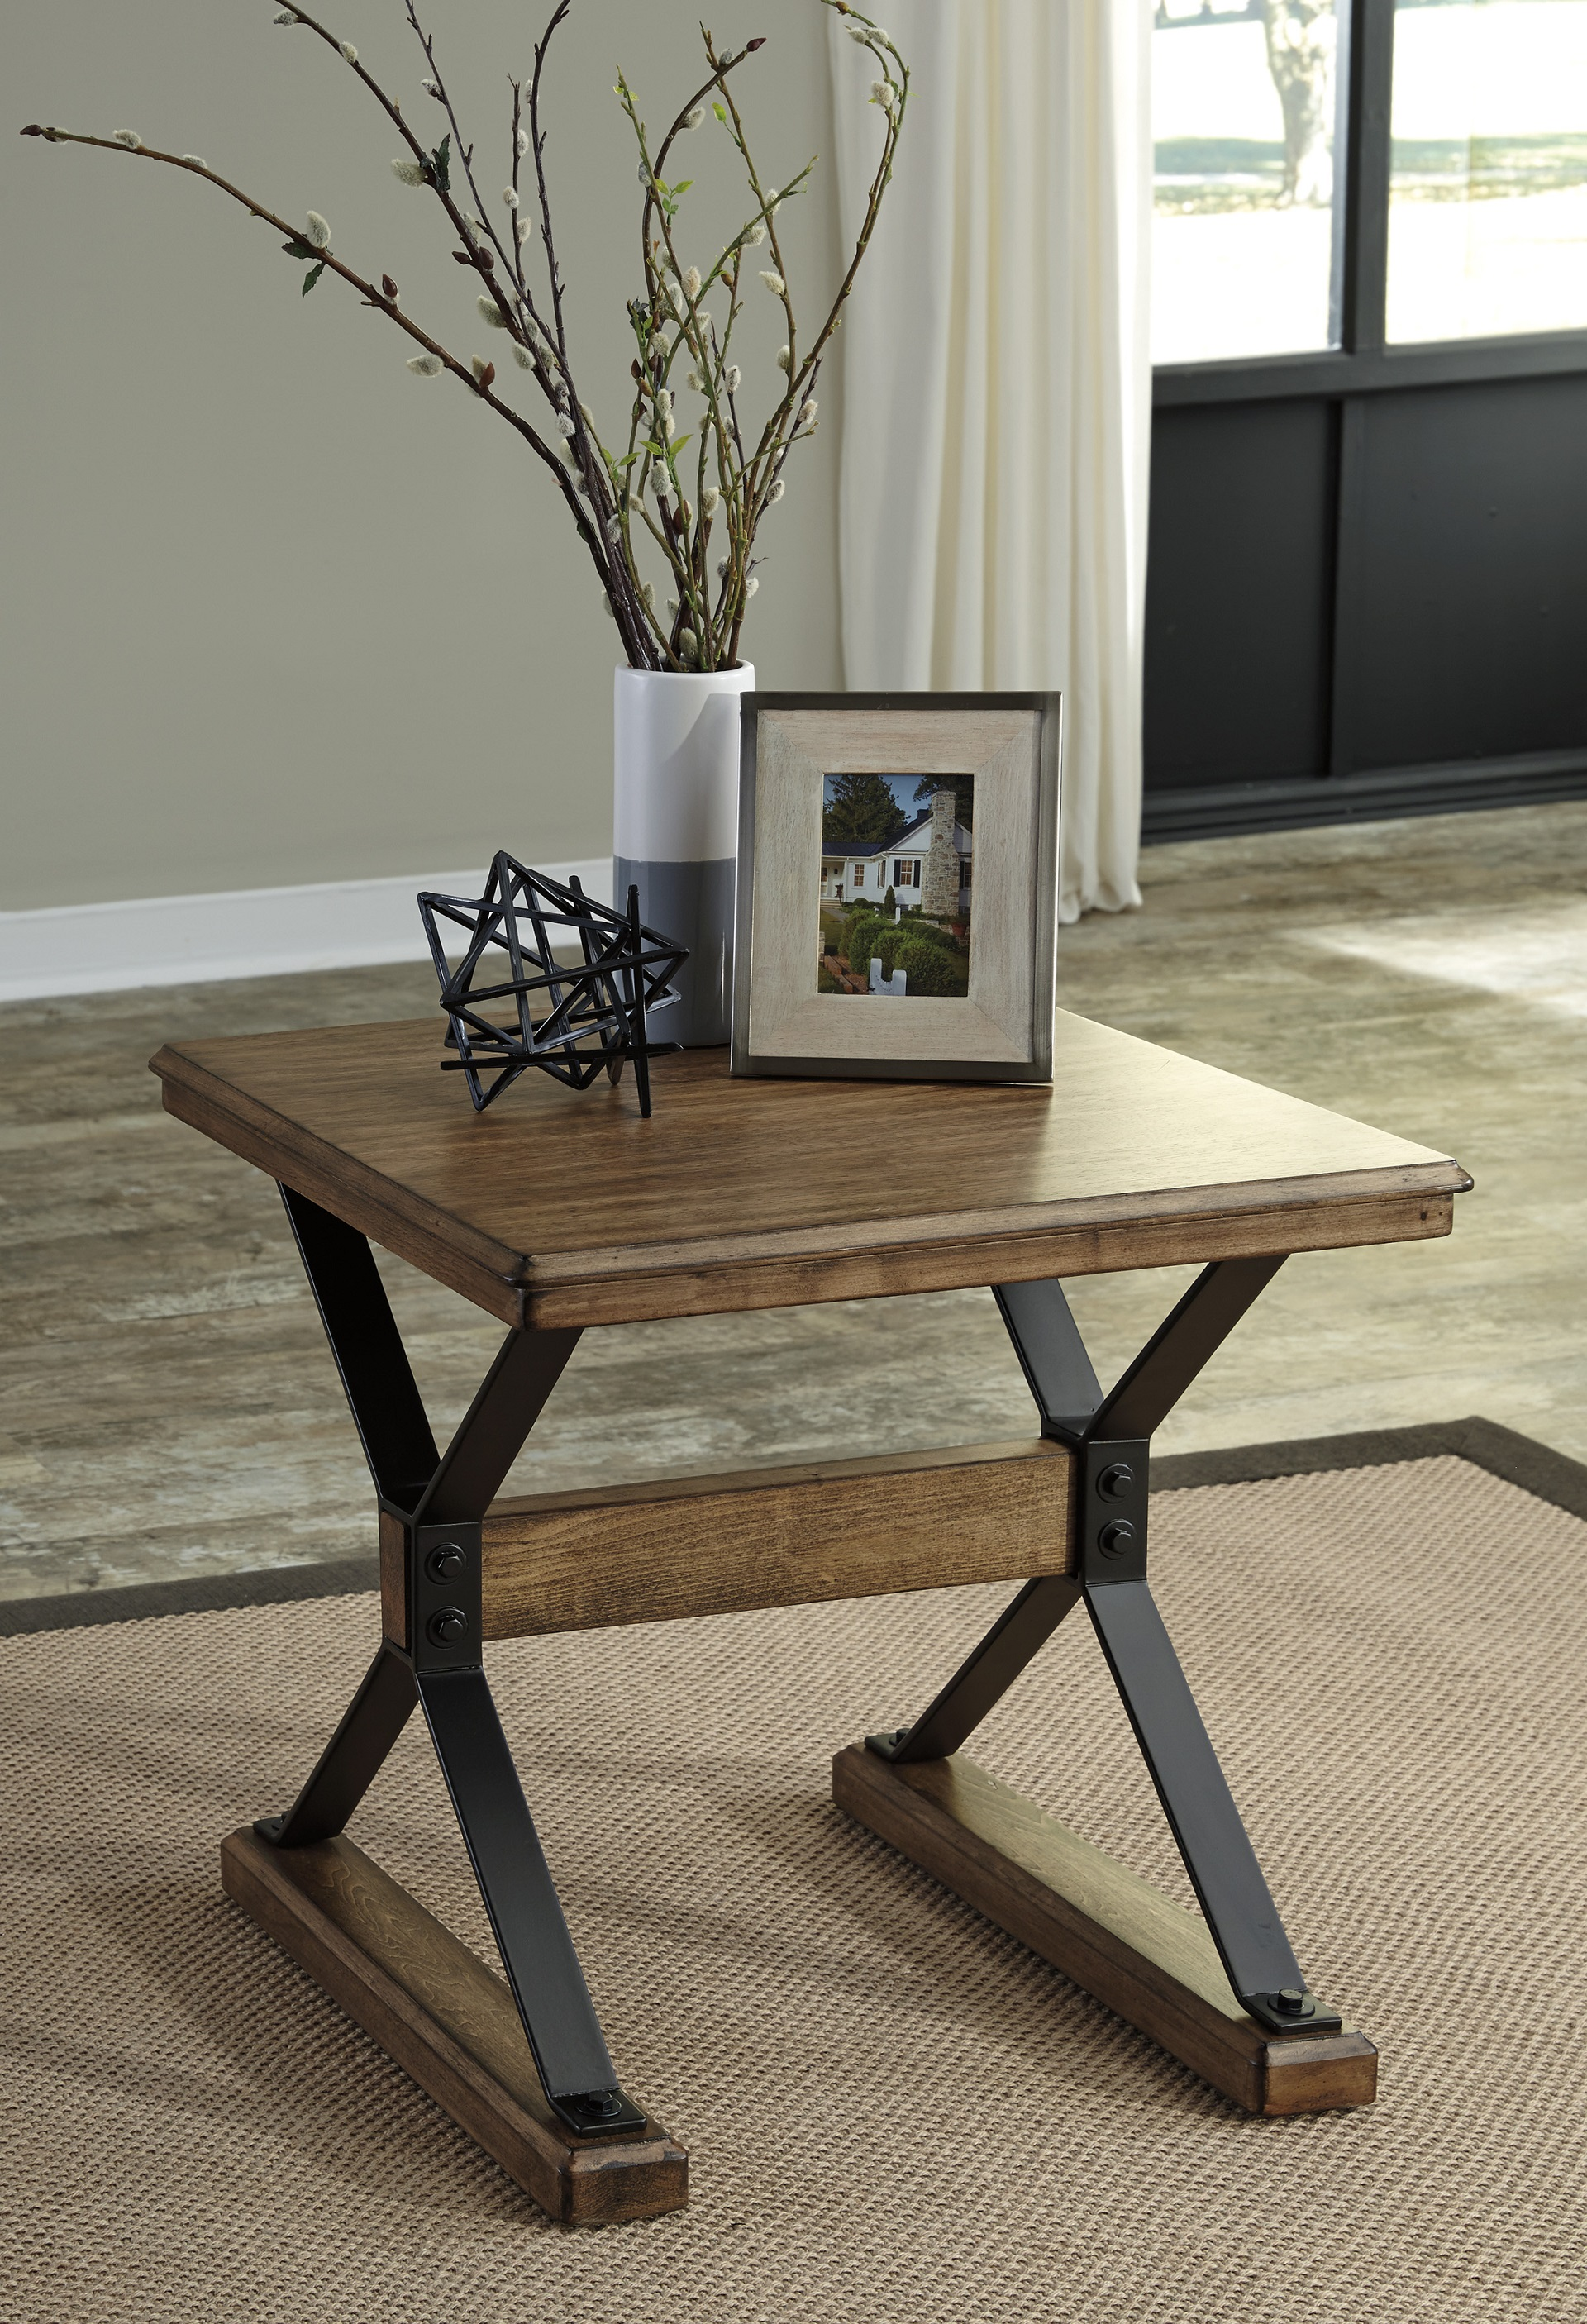 Ashley End Tables for Living Room